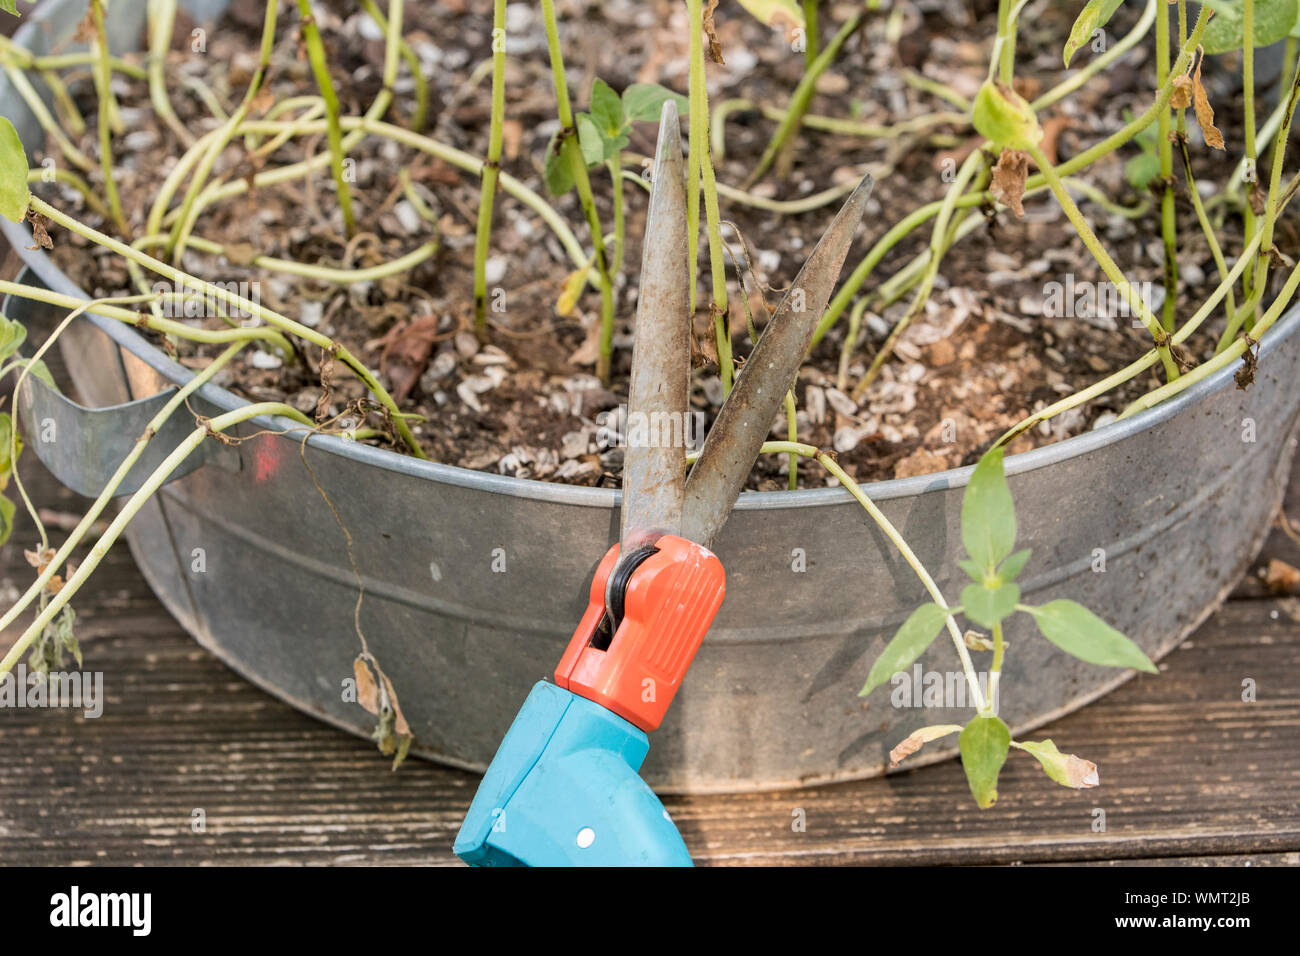 Scissors for gardening with flowers. Stock Photo